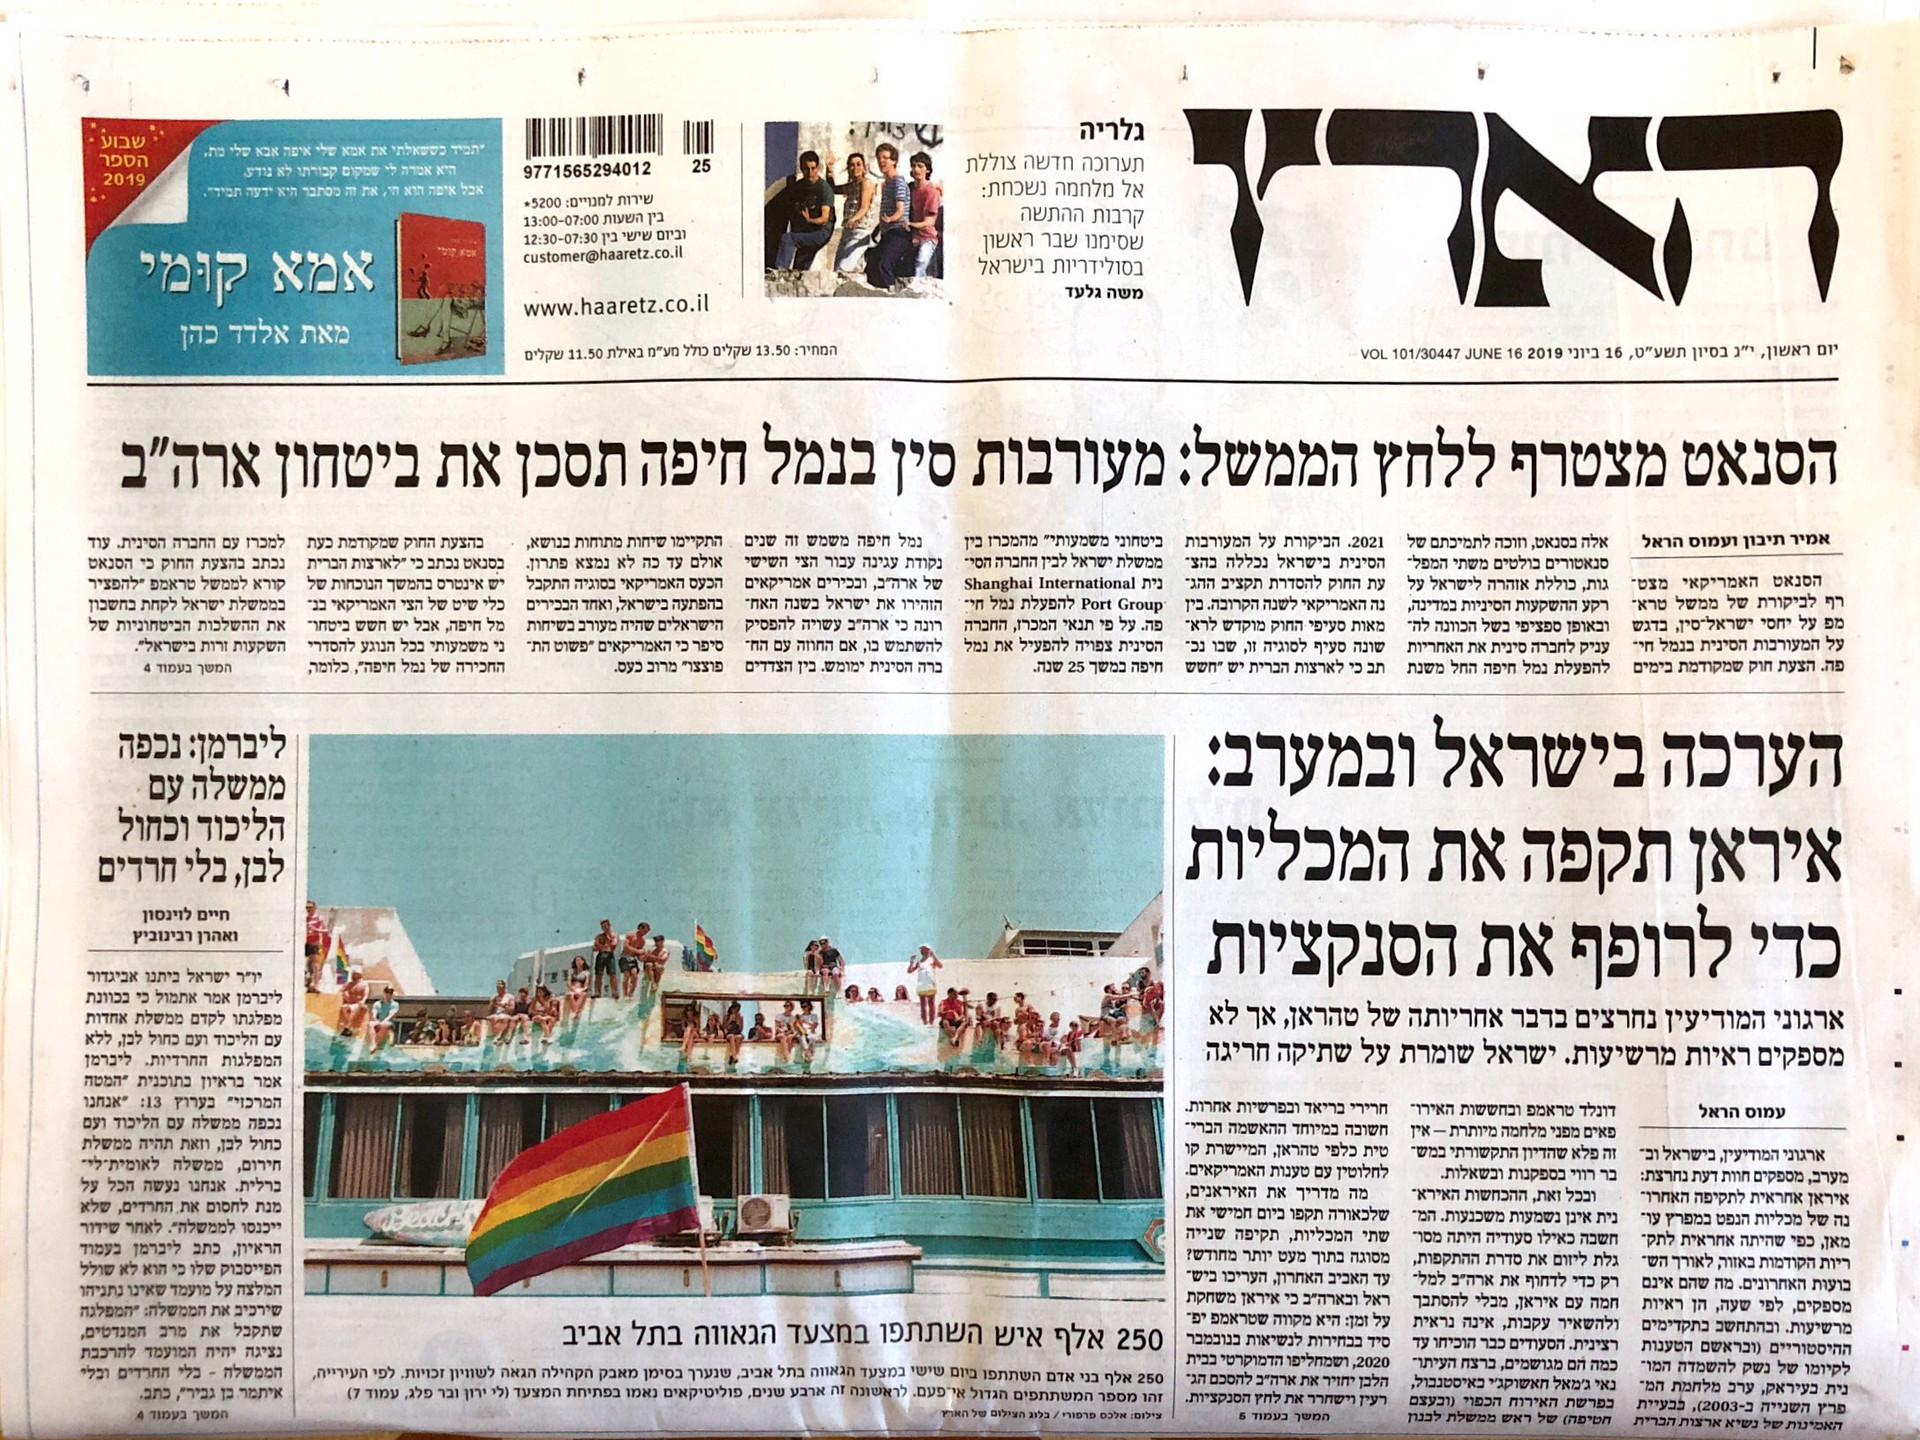 Israeli beauty, and pain: The pride parade through Alex's eyes